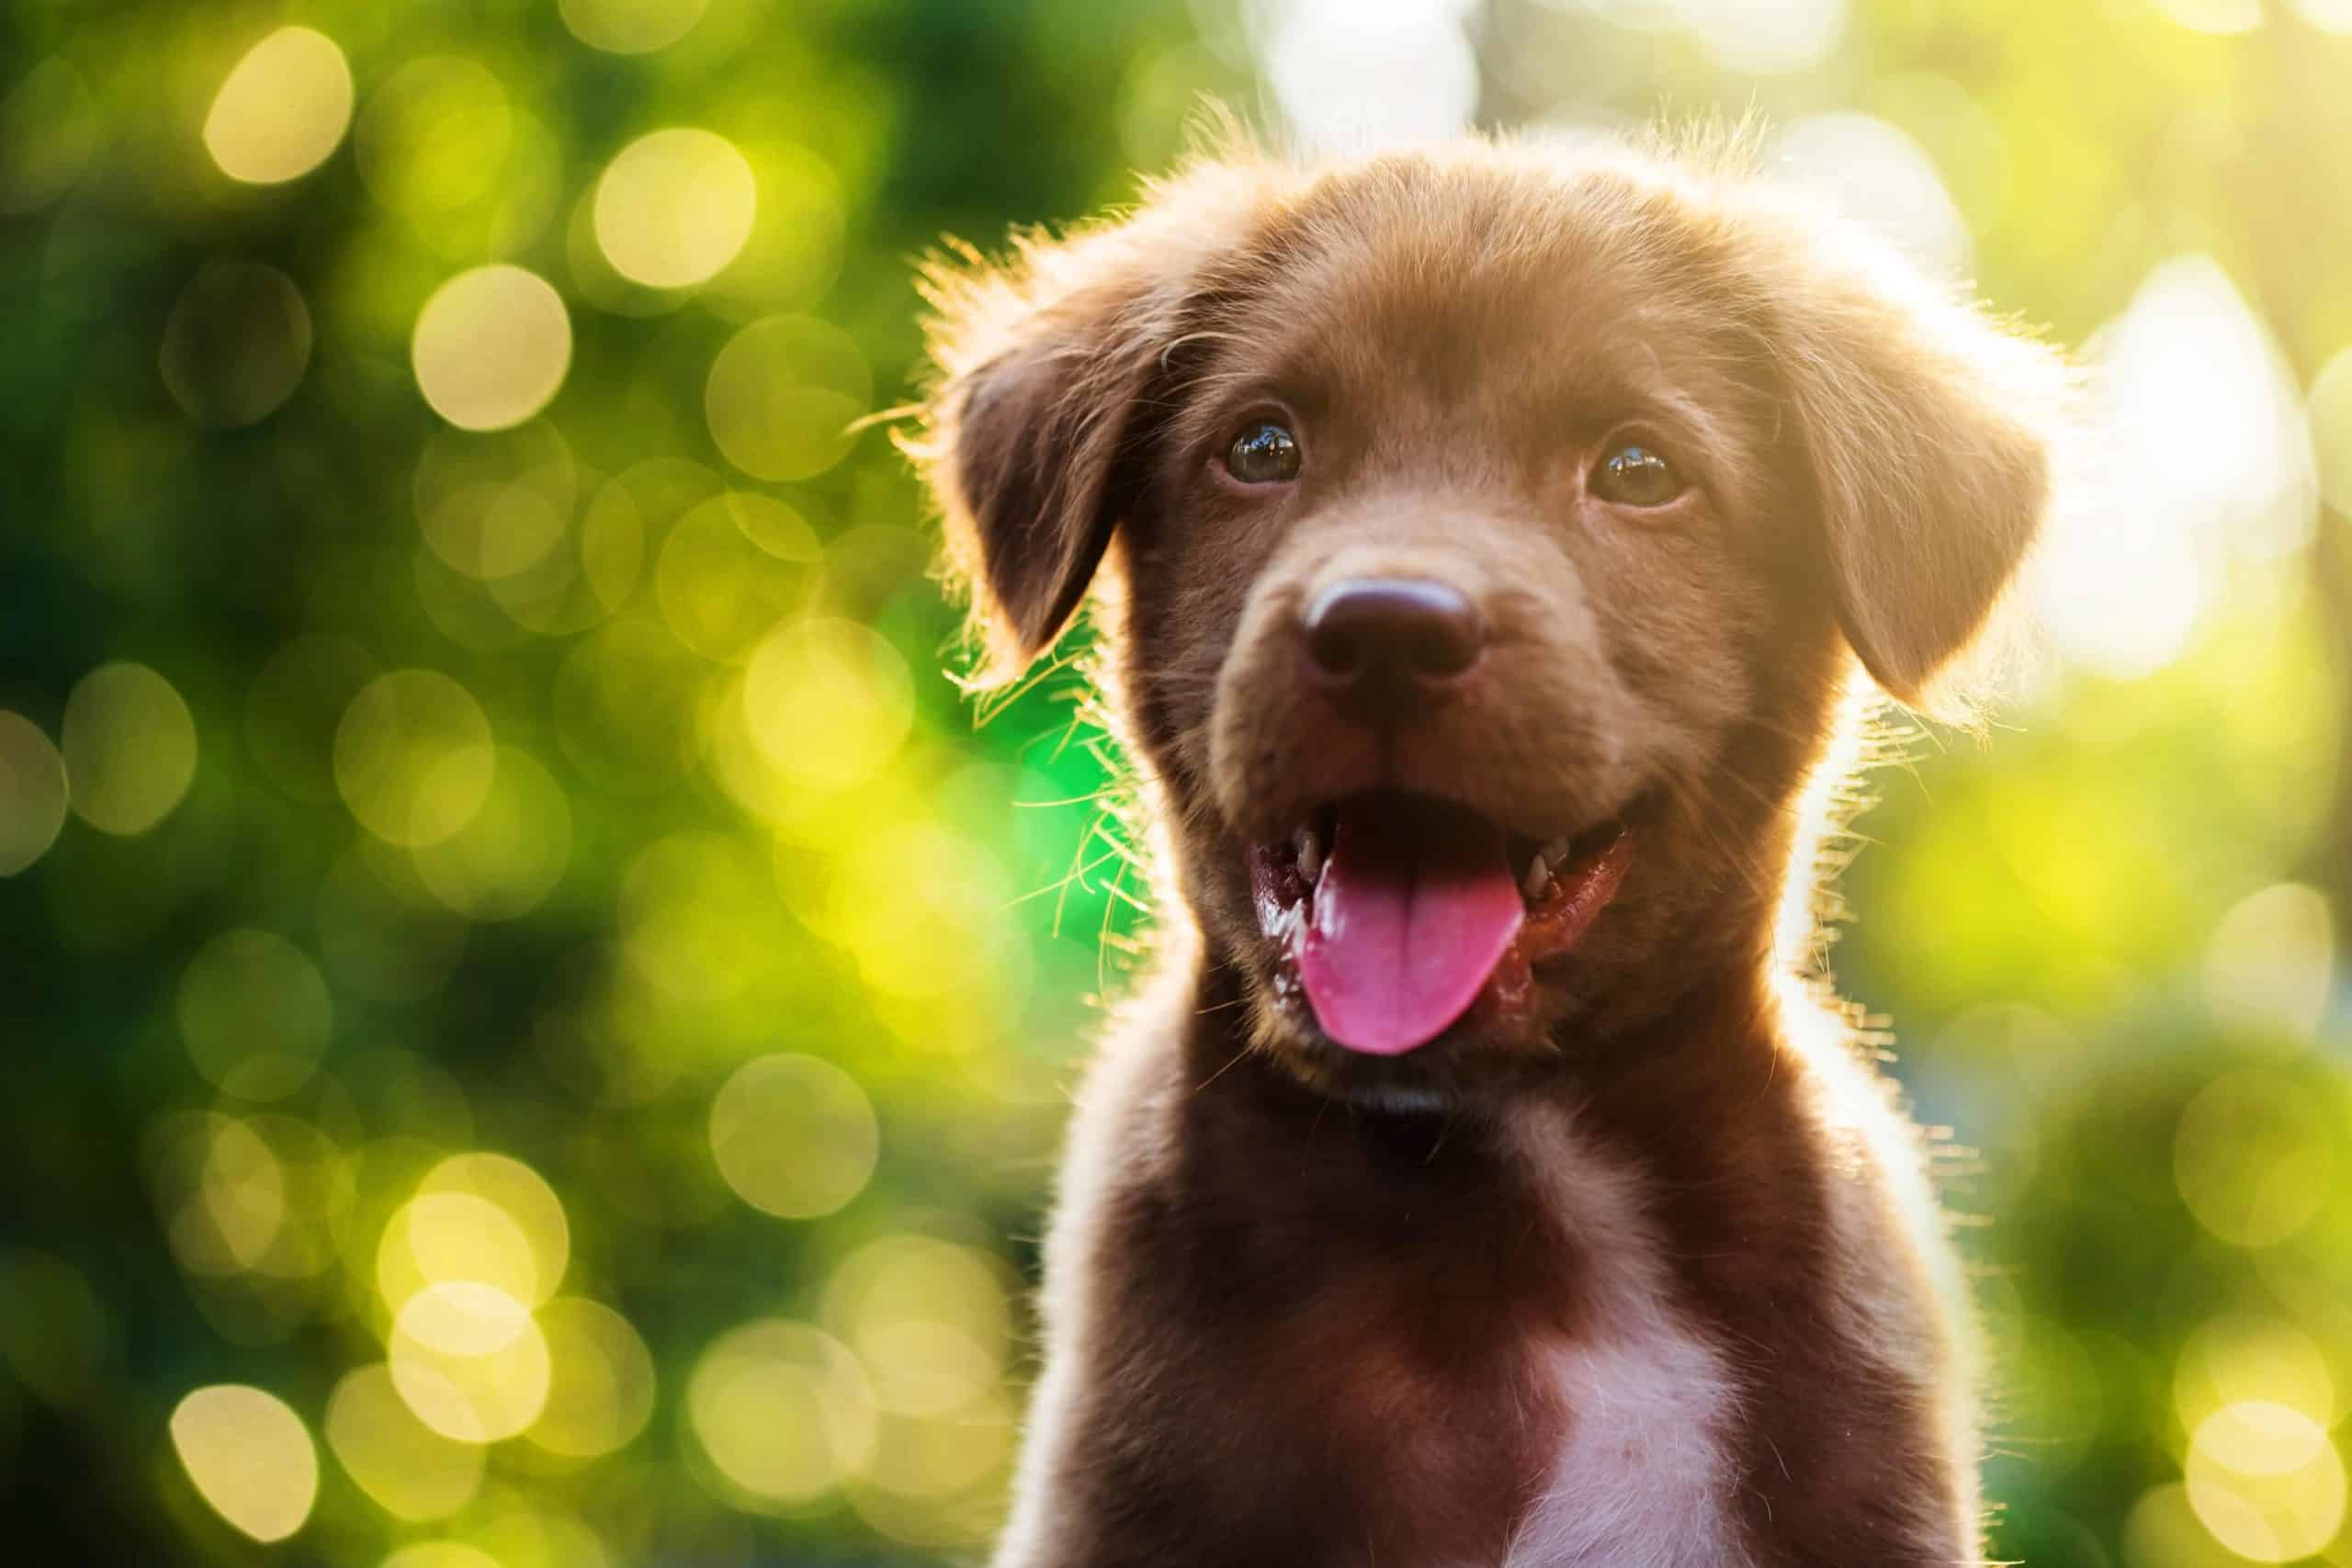 Happy chocolate Labrador puppy outside on a sunny day. Keep your dog healthy with a nutritious diet and plenty of exercise. Get pet insurance to make sure you're covered for any emergency.